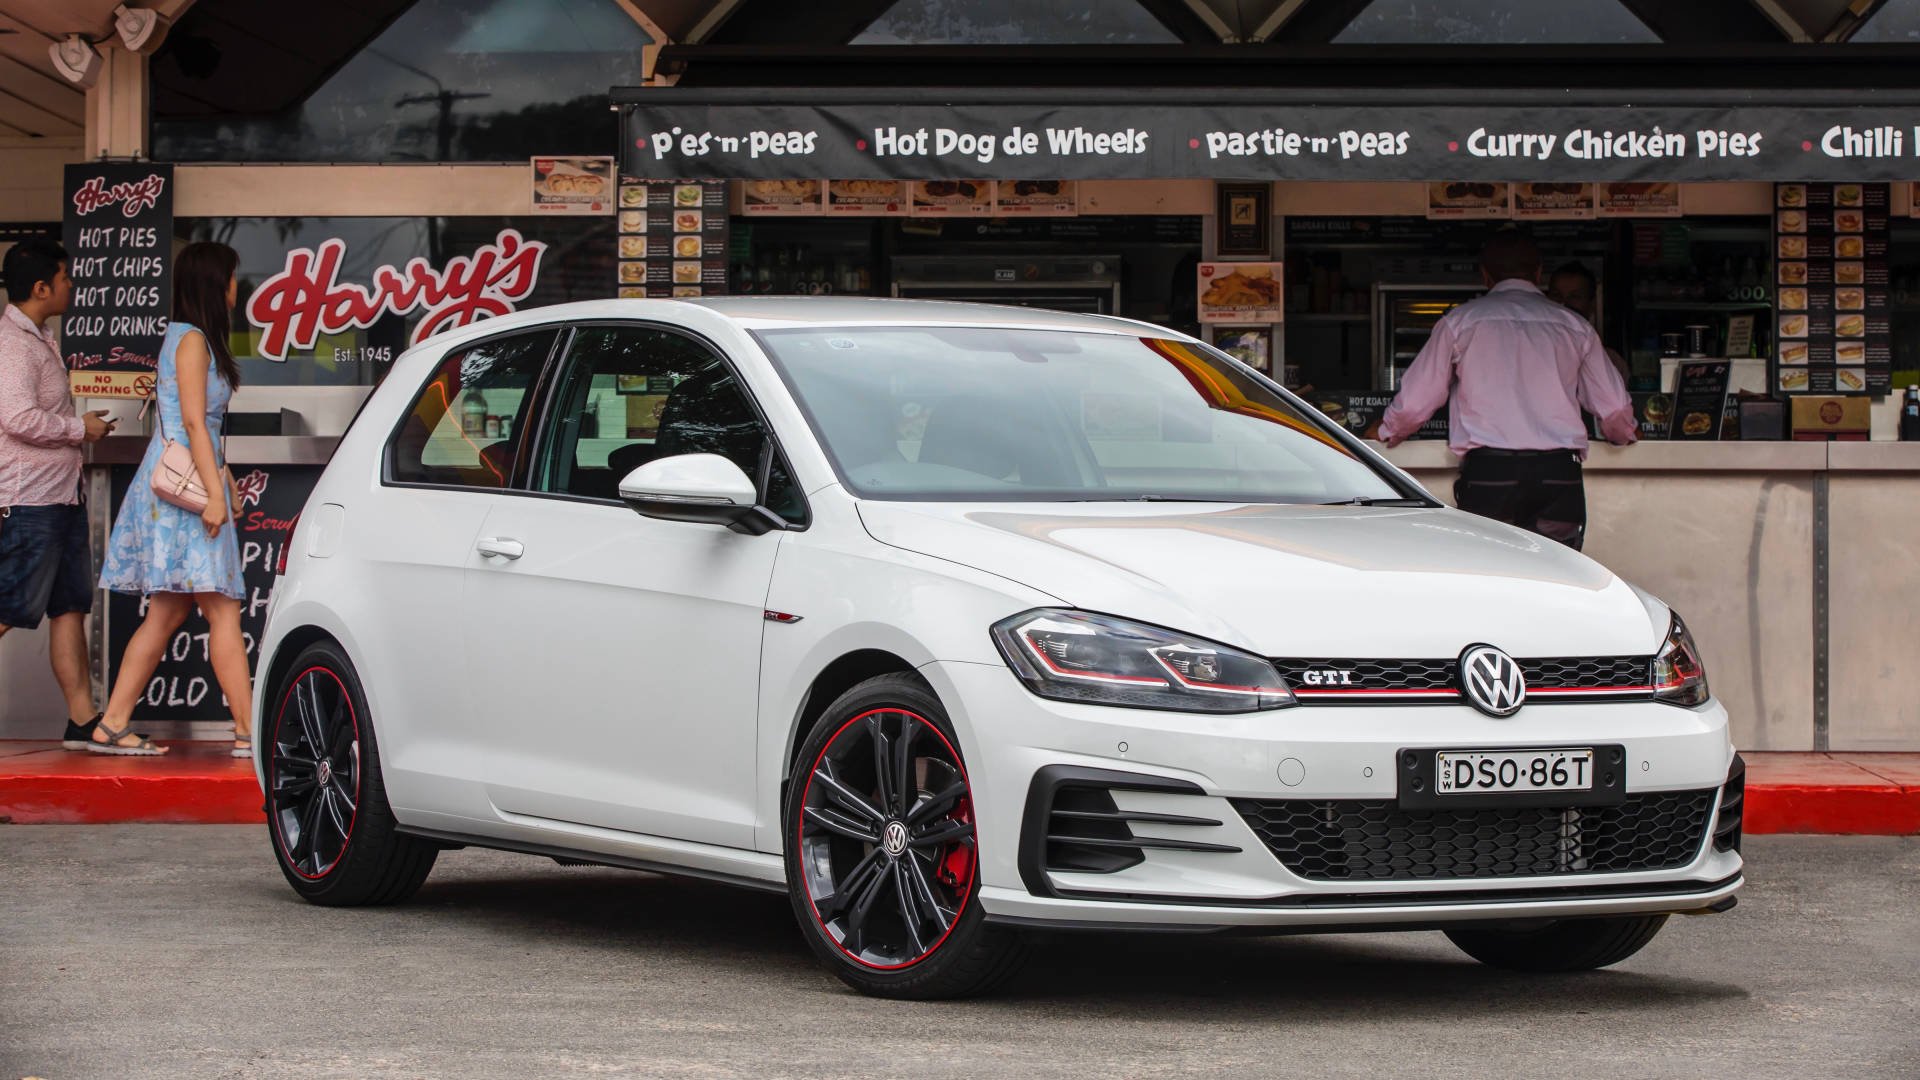 2018 Volkswagen Golf GTI Original Harry's Cafe